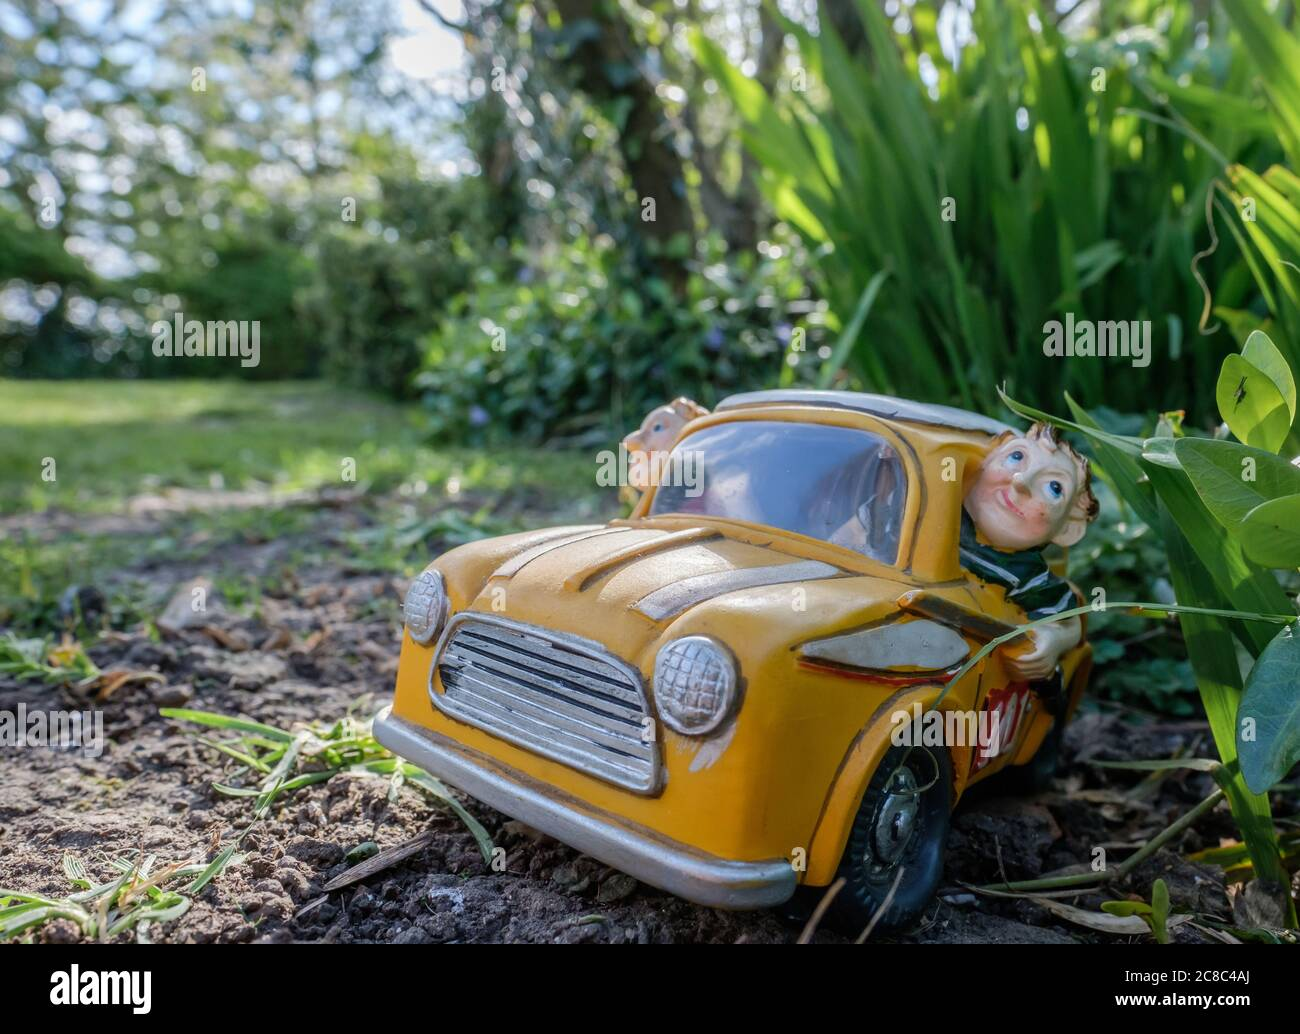 Miniature, ceramic styled small model of a hatchback car shown in various positions in a large, residential garden. Stock Photo